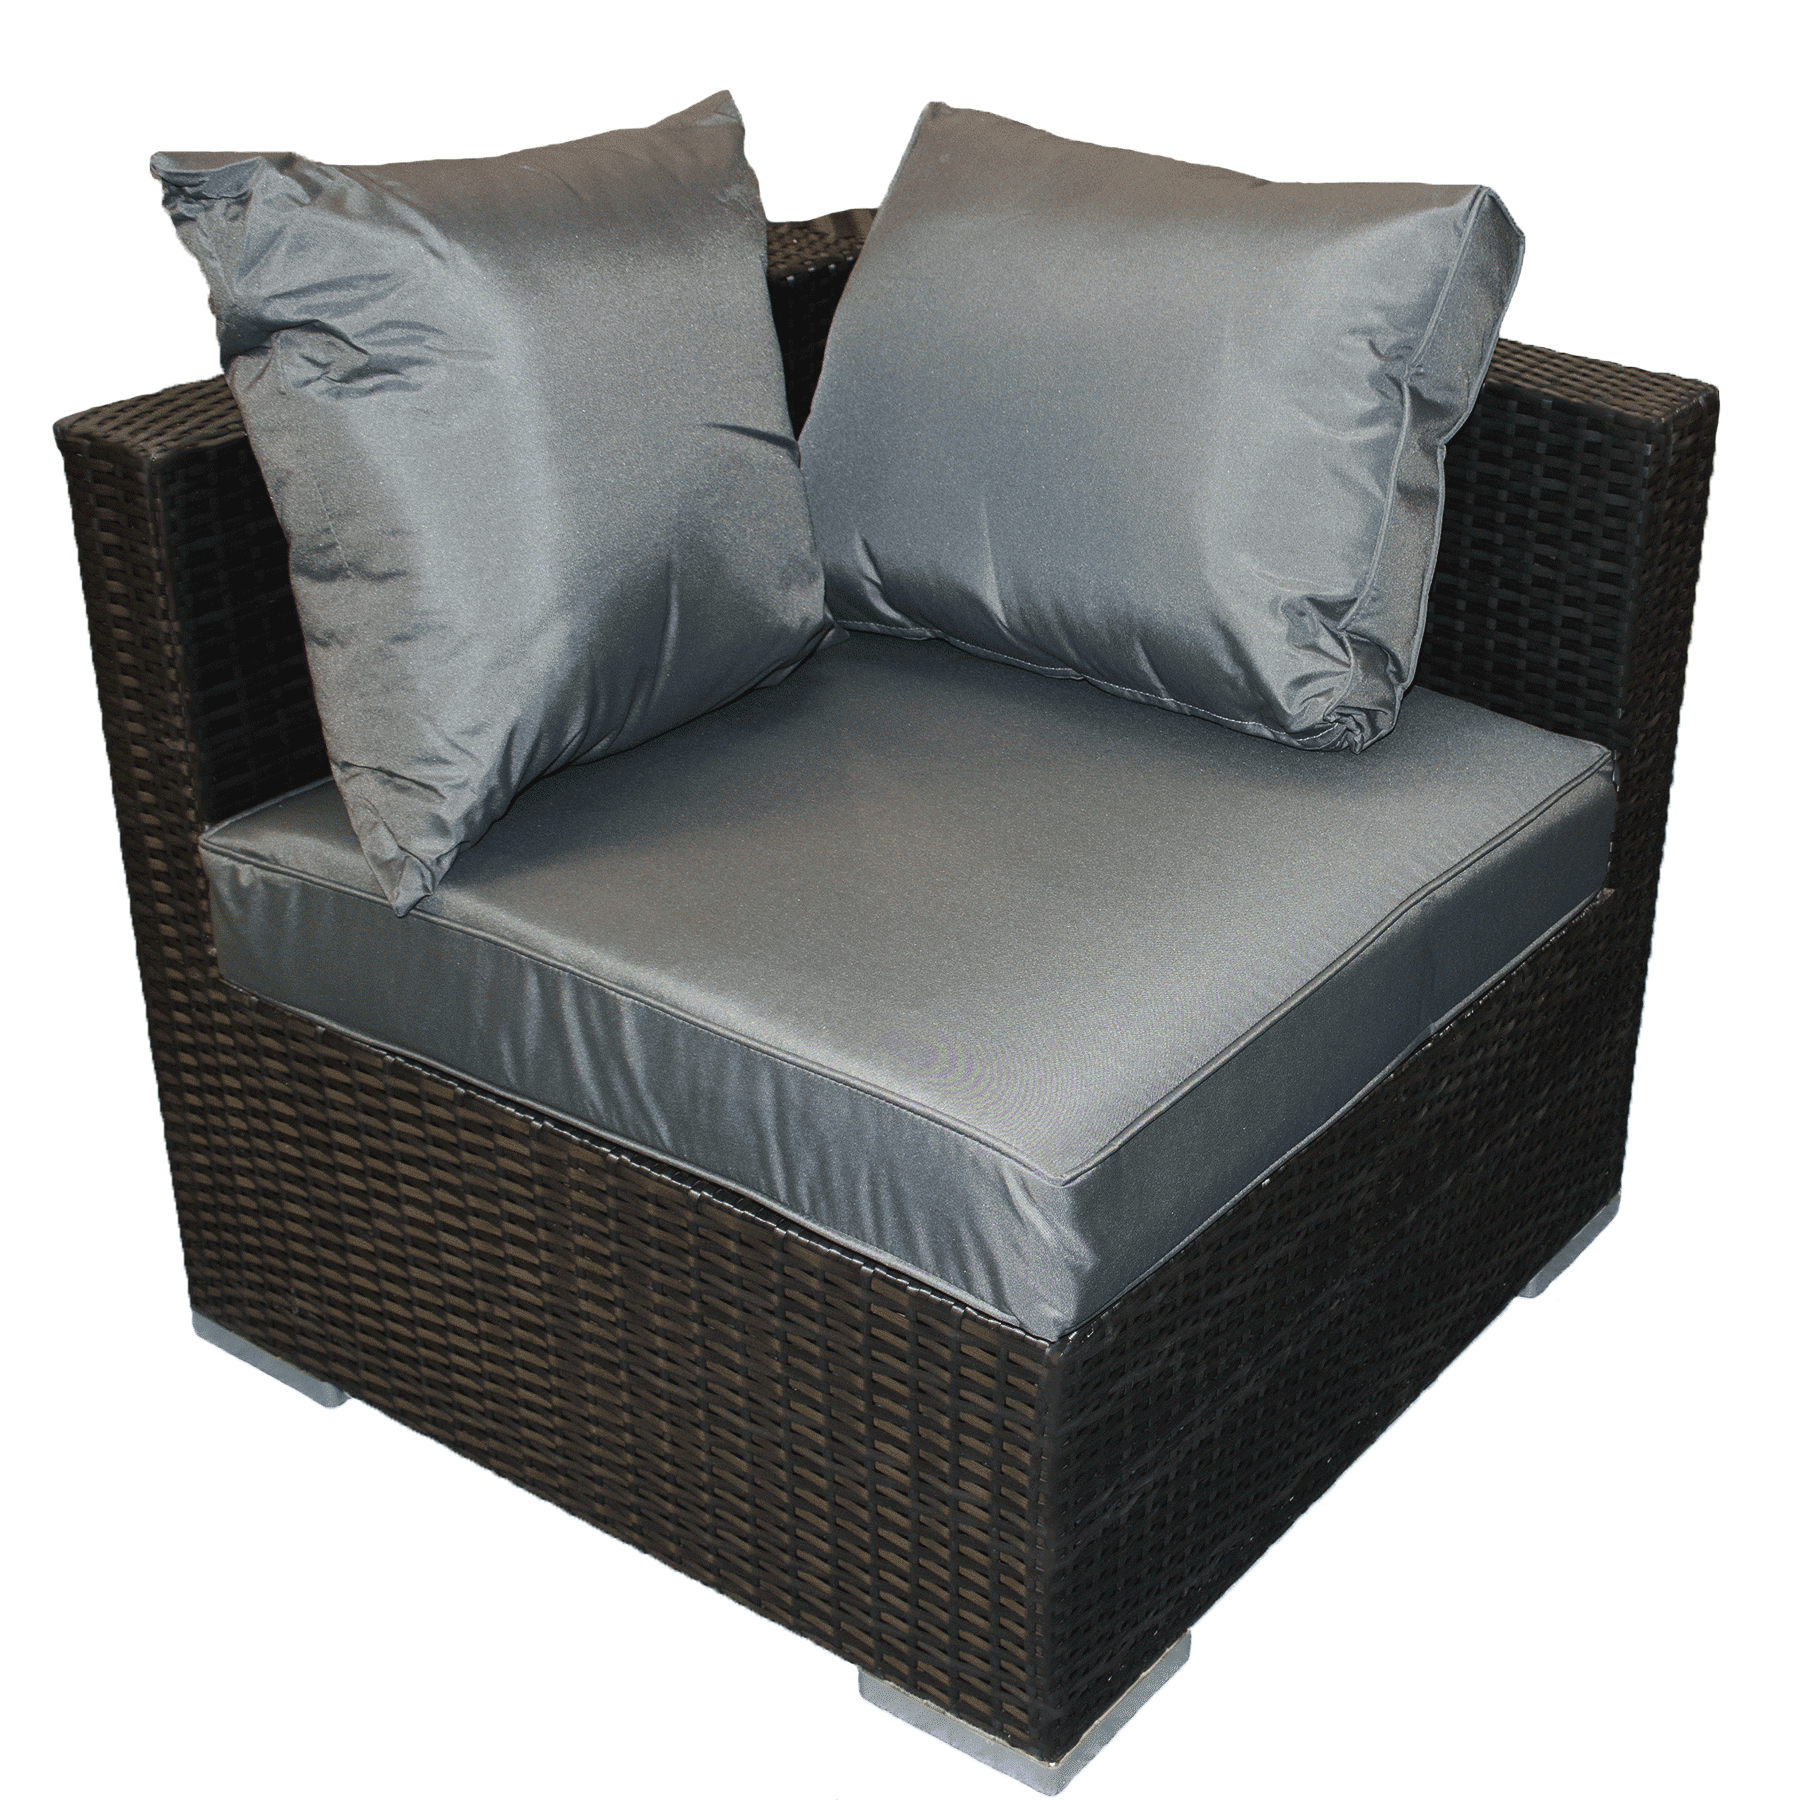 Rattan Sofa Corner Set L Shaped Rattan Sofa Gardeon 6 Piece Outdoor Wicker Sofa Set Black